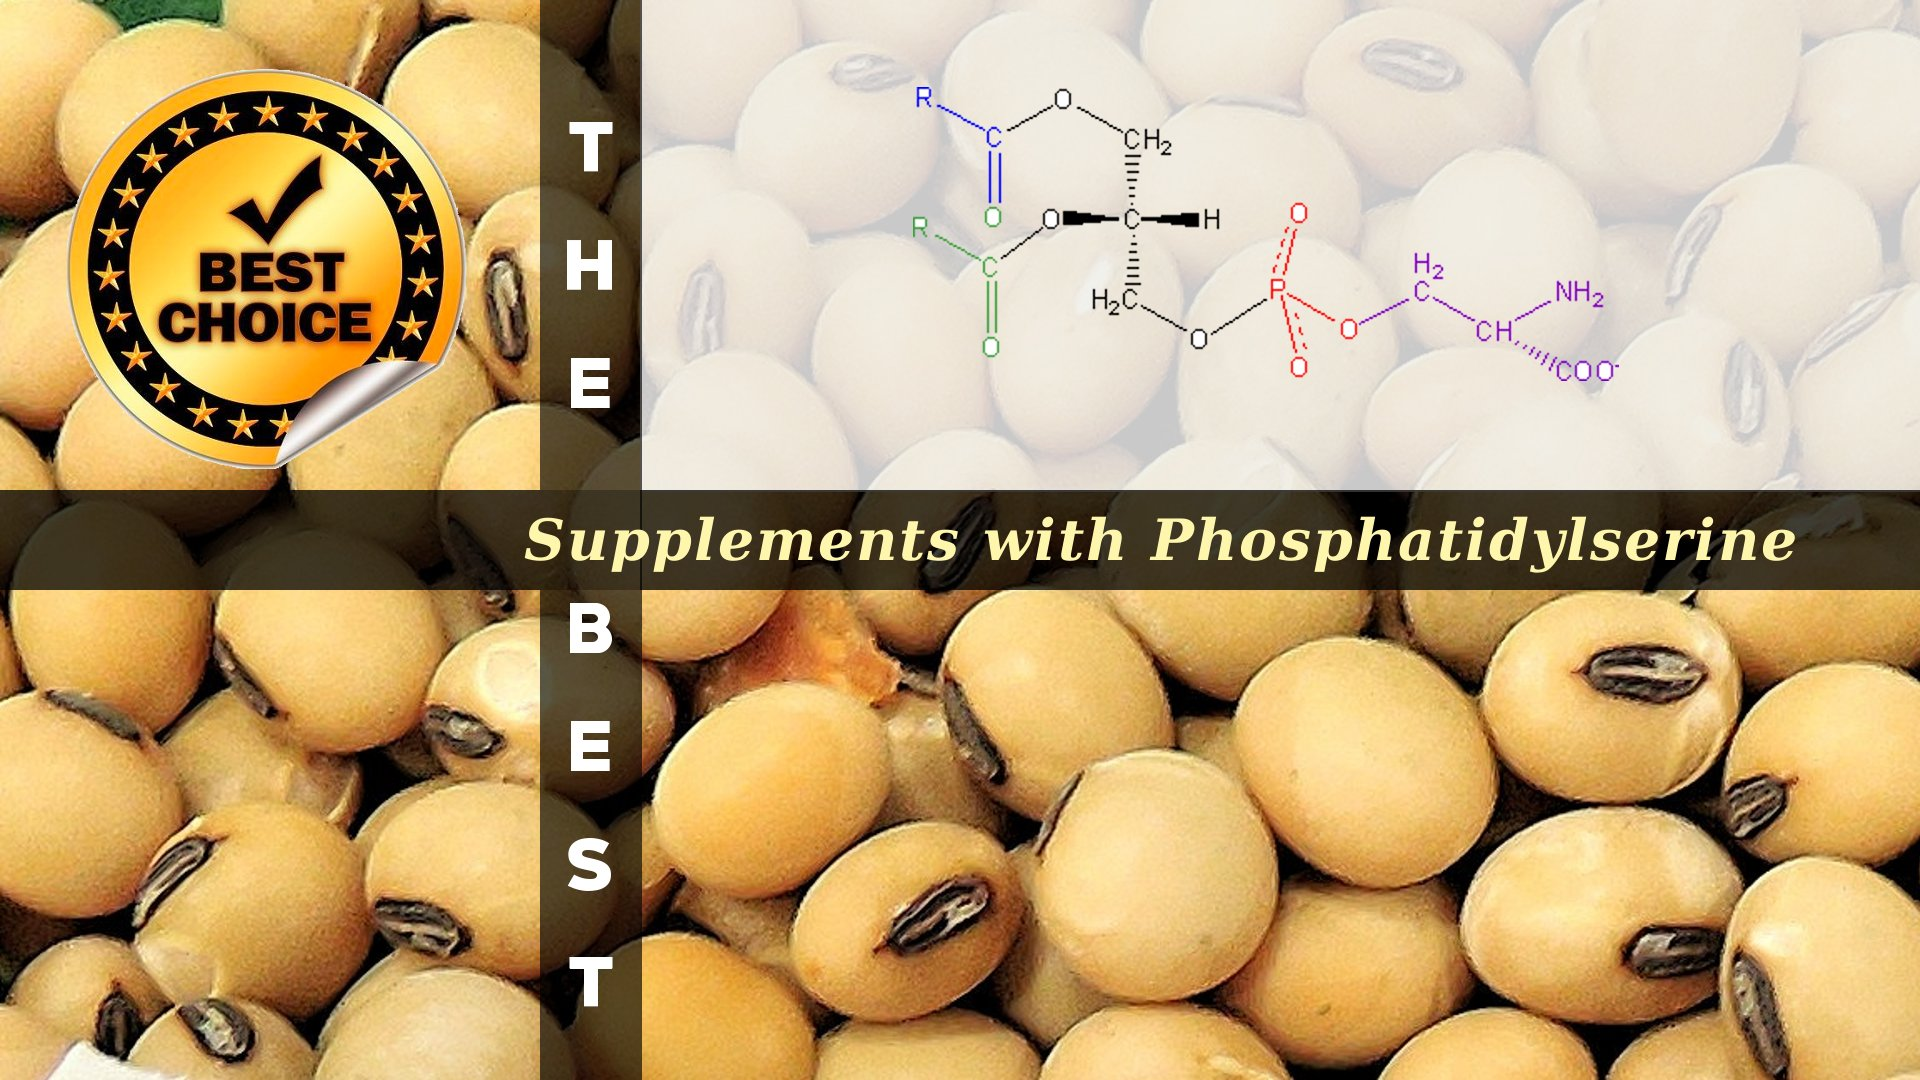 The Supplements with Phosphatidylserine